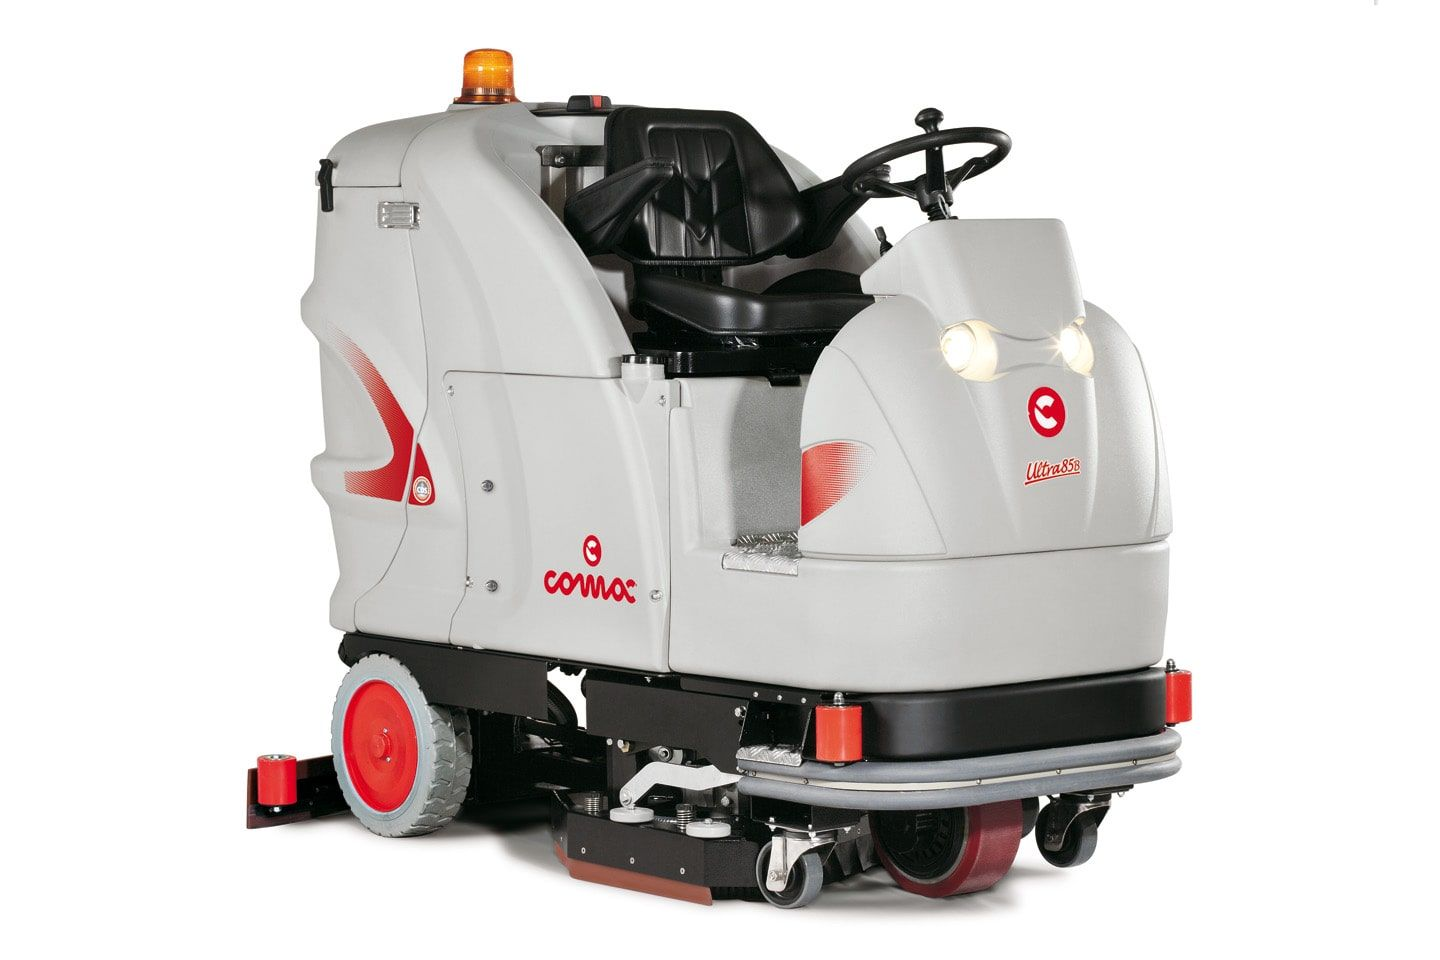 Comac Ultra 85B Scrubber Dryer